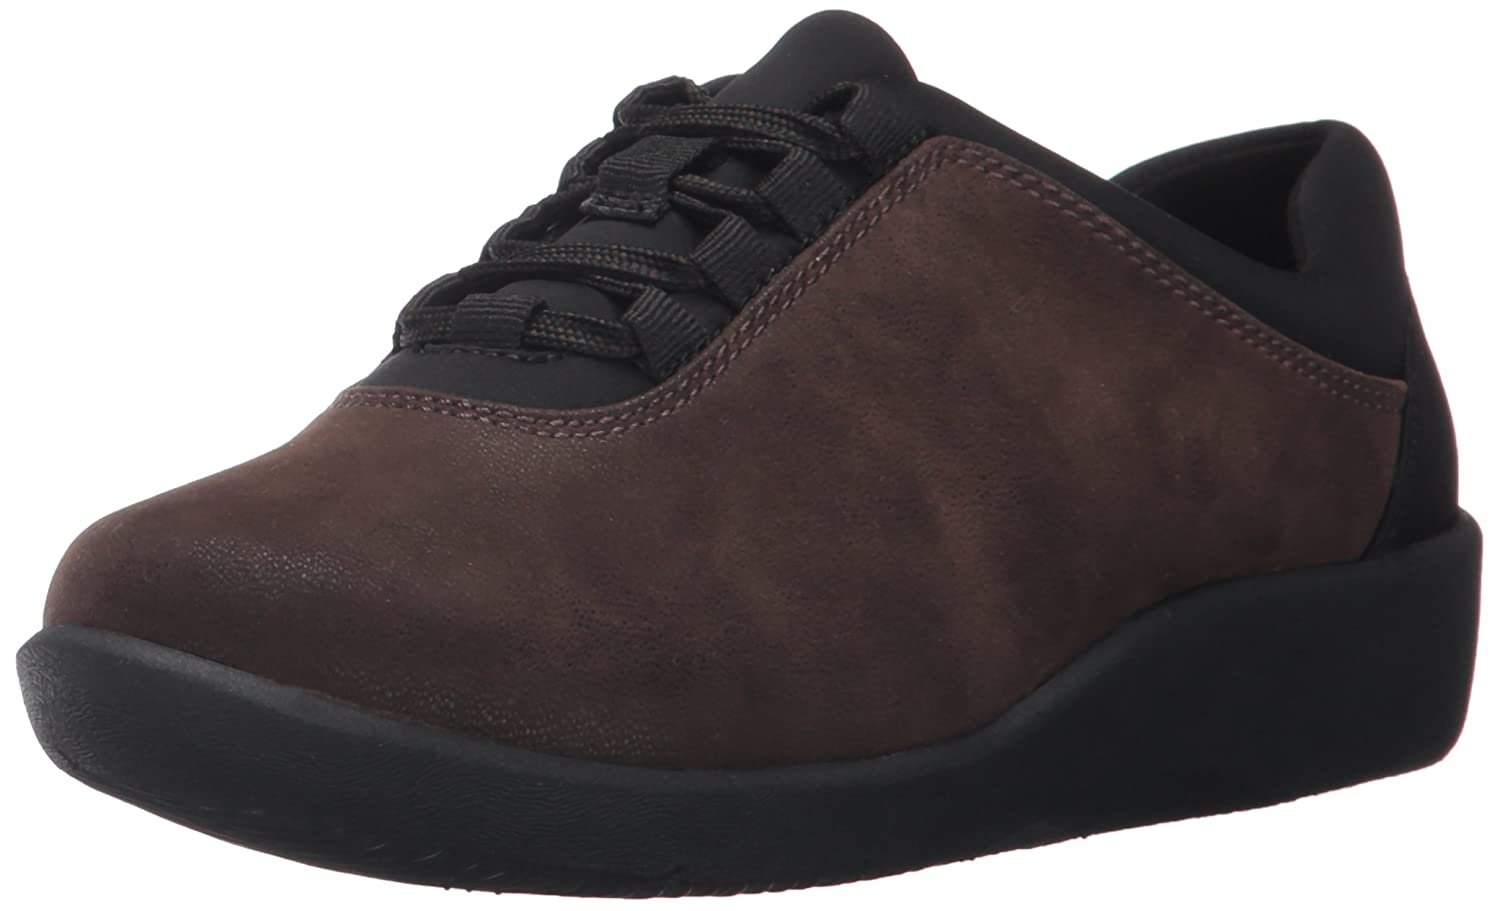 CLARKS Women's Sillian Pine Walking Shoe B01N9H9VG2 7 N US|Brown Synthetic